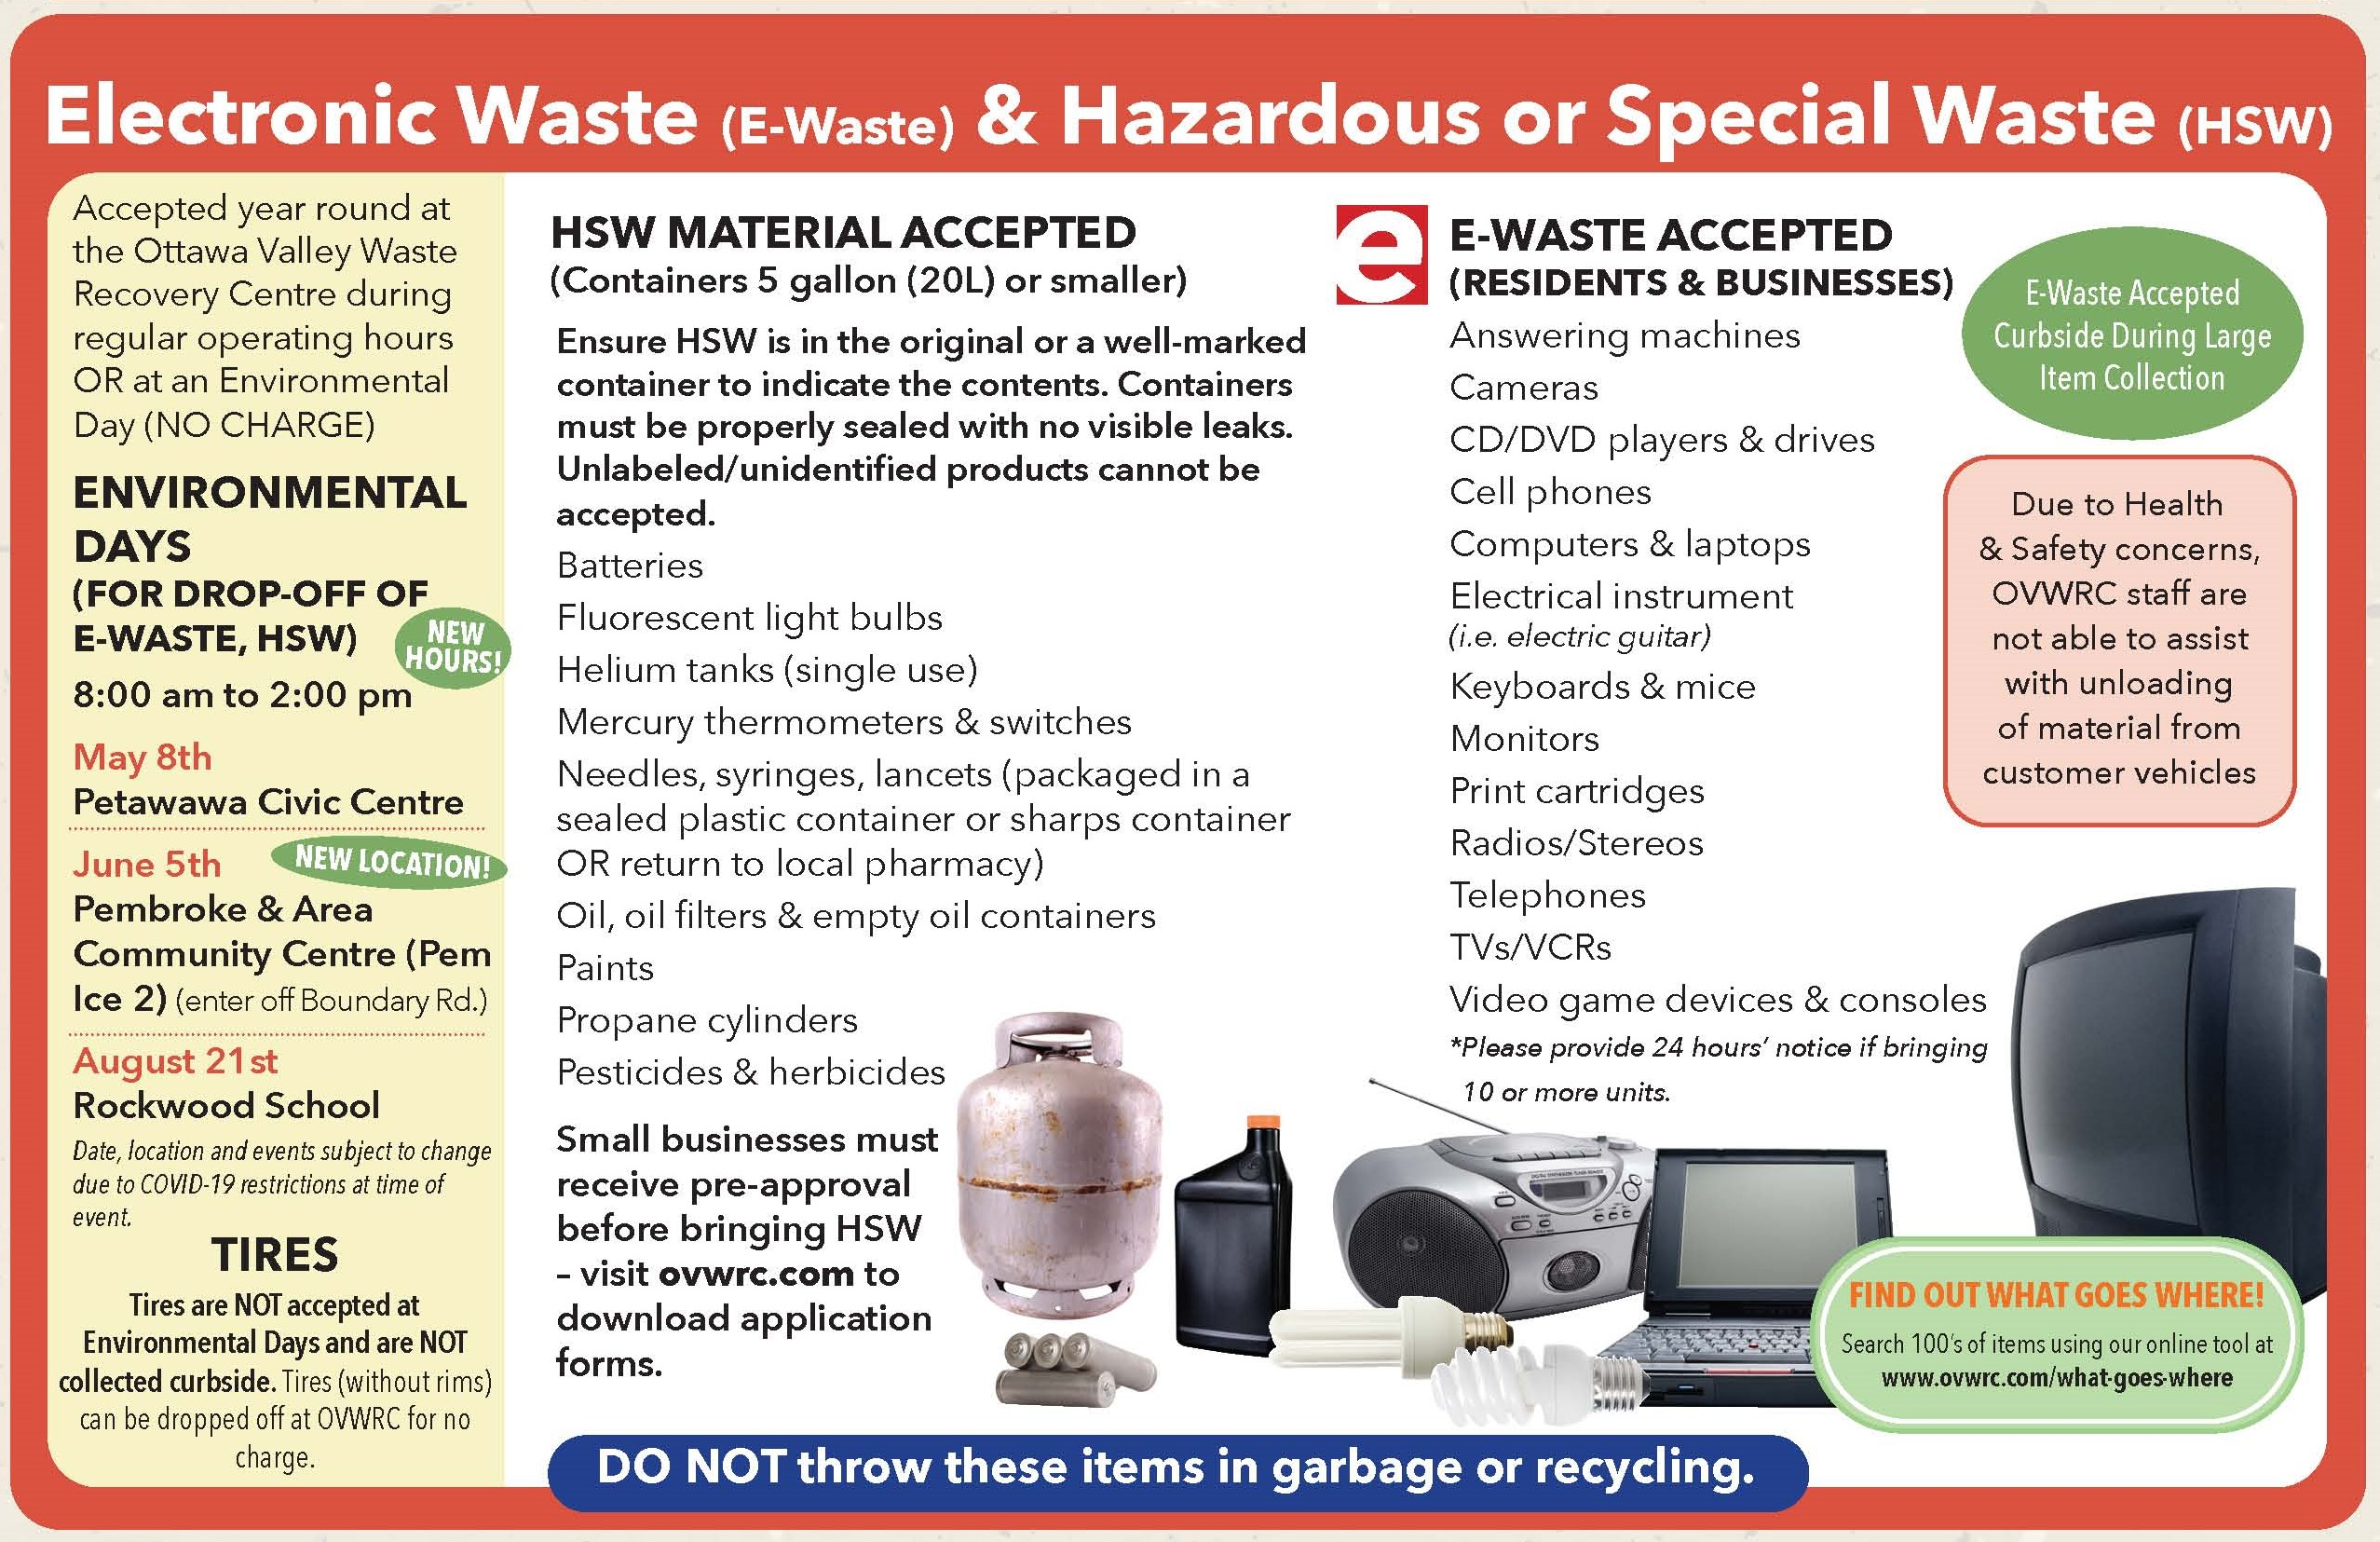 electronic waste notice, may 8, petawawa civic centre